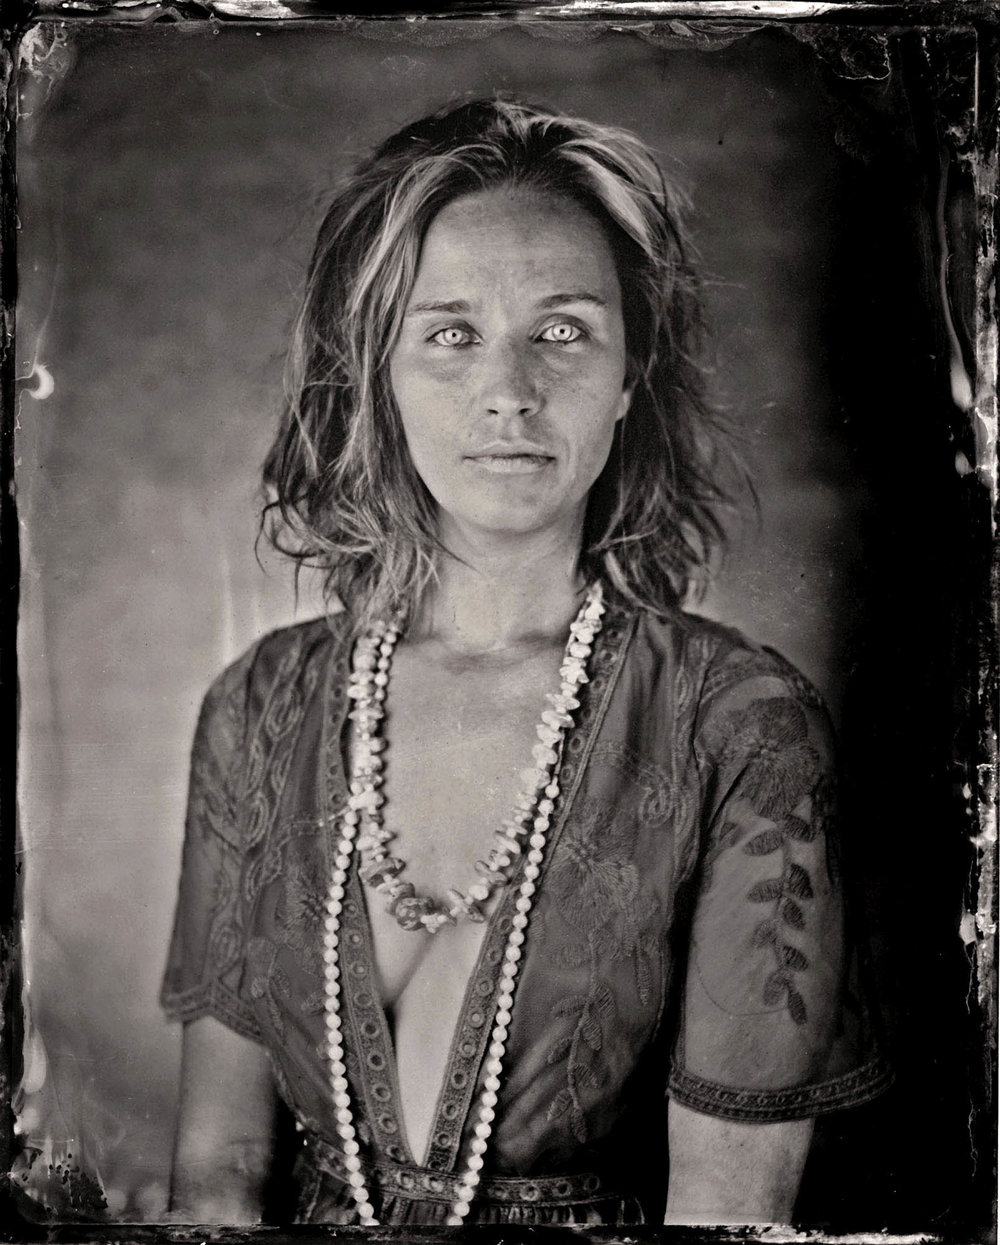 Title : Wallis   By:  Jason  Chinchen    https://www.instagram.com/analogue_tintypes/